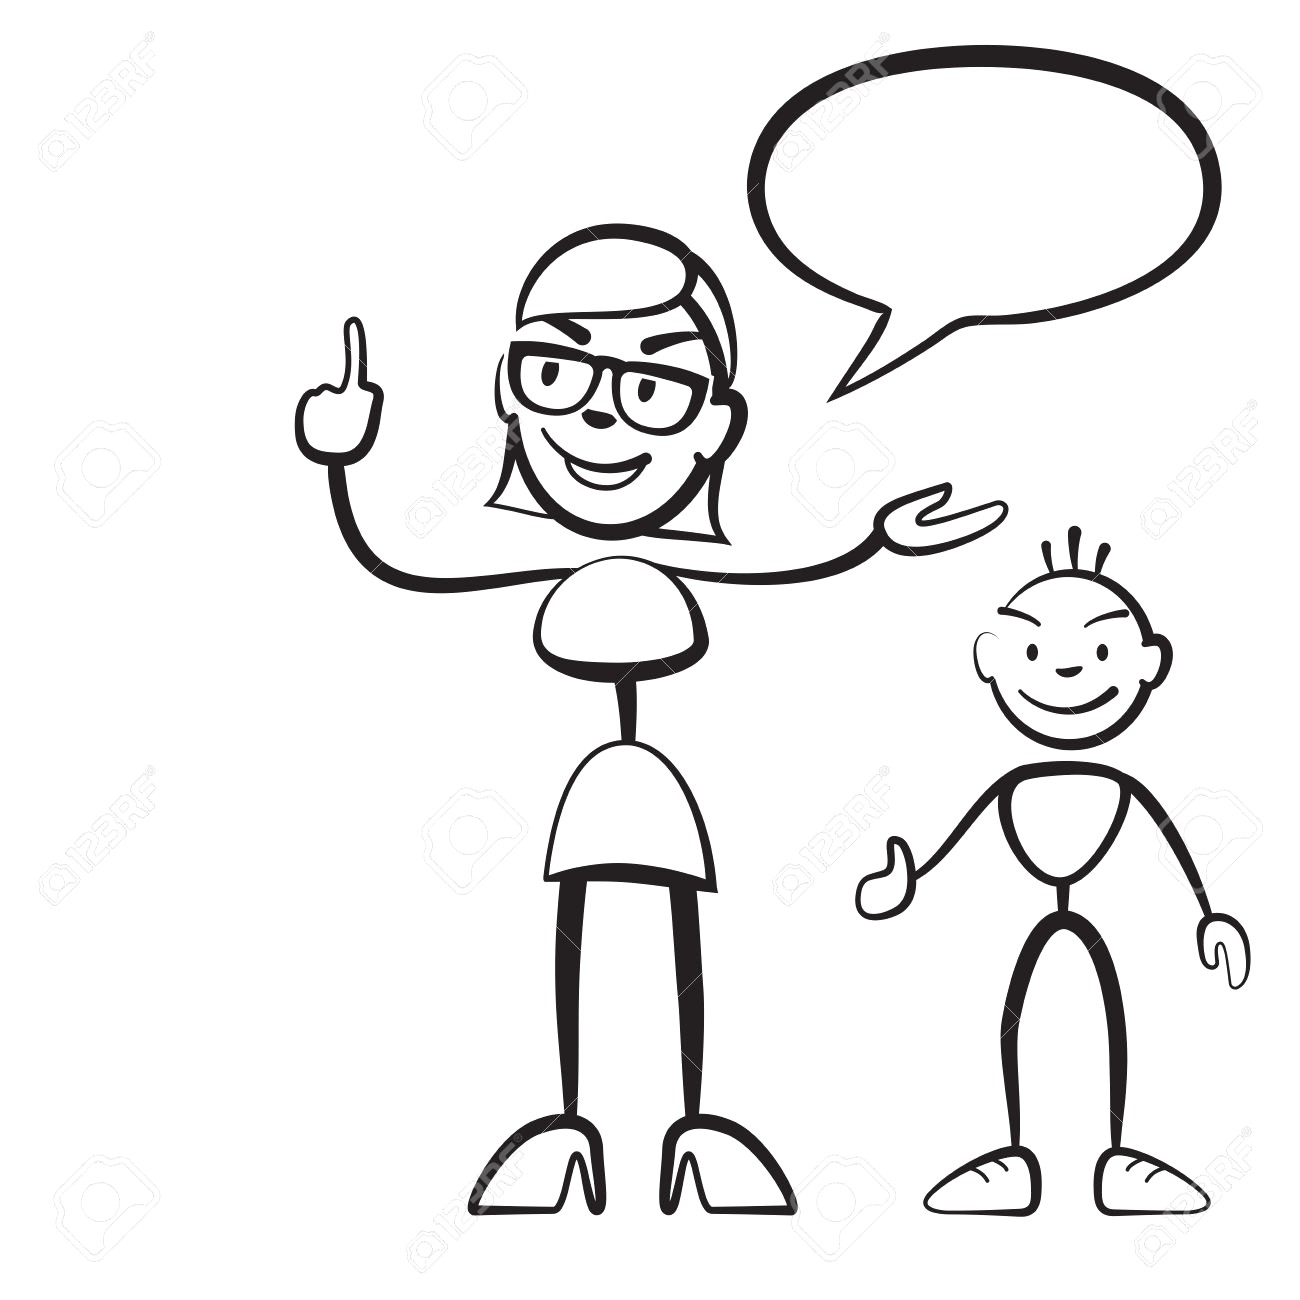 1300x1300 69006395 Stick Figure Persona Woman With Child And Speech Bubble